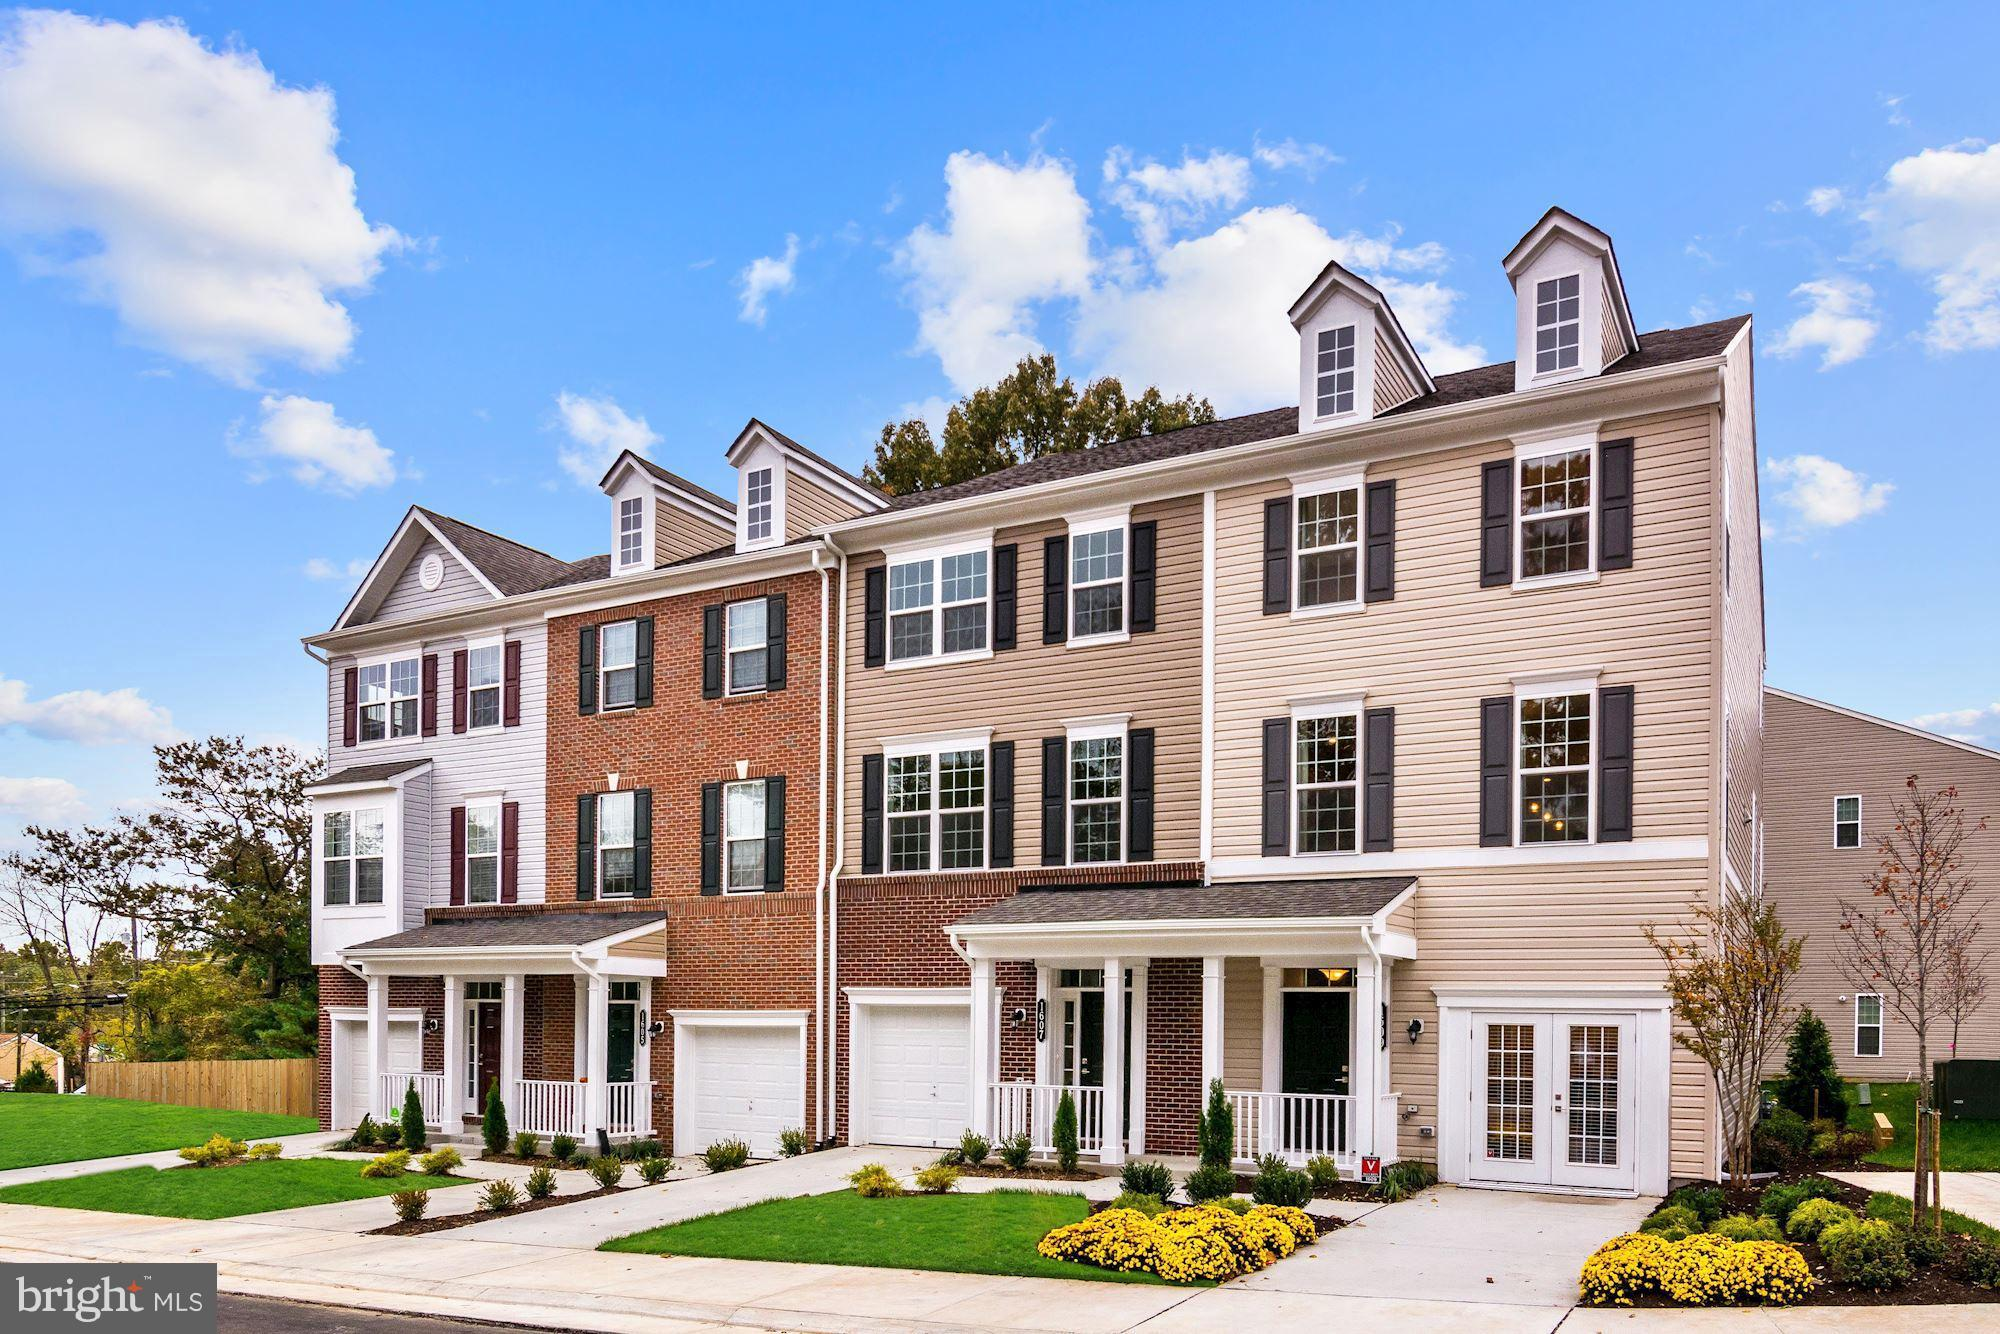 GORGEOUS BRAND NEW BEAZER TH STYLE CONDO W/ 1 CAR GARAGE! 4 BRS & 3.5 BAS. GOURMET KIT W/ SS APPLIANCES & PANTRY. HUGE GREAT RM W/ OPT FP & OPT MORNING RM. UPPER LVL MASTER SUITE W/ WIC.3 LVL EXTENSION (MORNING RM & SITTING RM). FINISHED REC RM.FOR A LIMITED TIME, RECEIVE $10,000 IN CLOSING COSTS. 5 MINS AWAY FROM VRE! PRICES/TERMS/AVAILABILITY SUBJECT TO CHANGE. PHOTOS OF SIMILAR HOME.